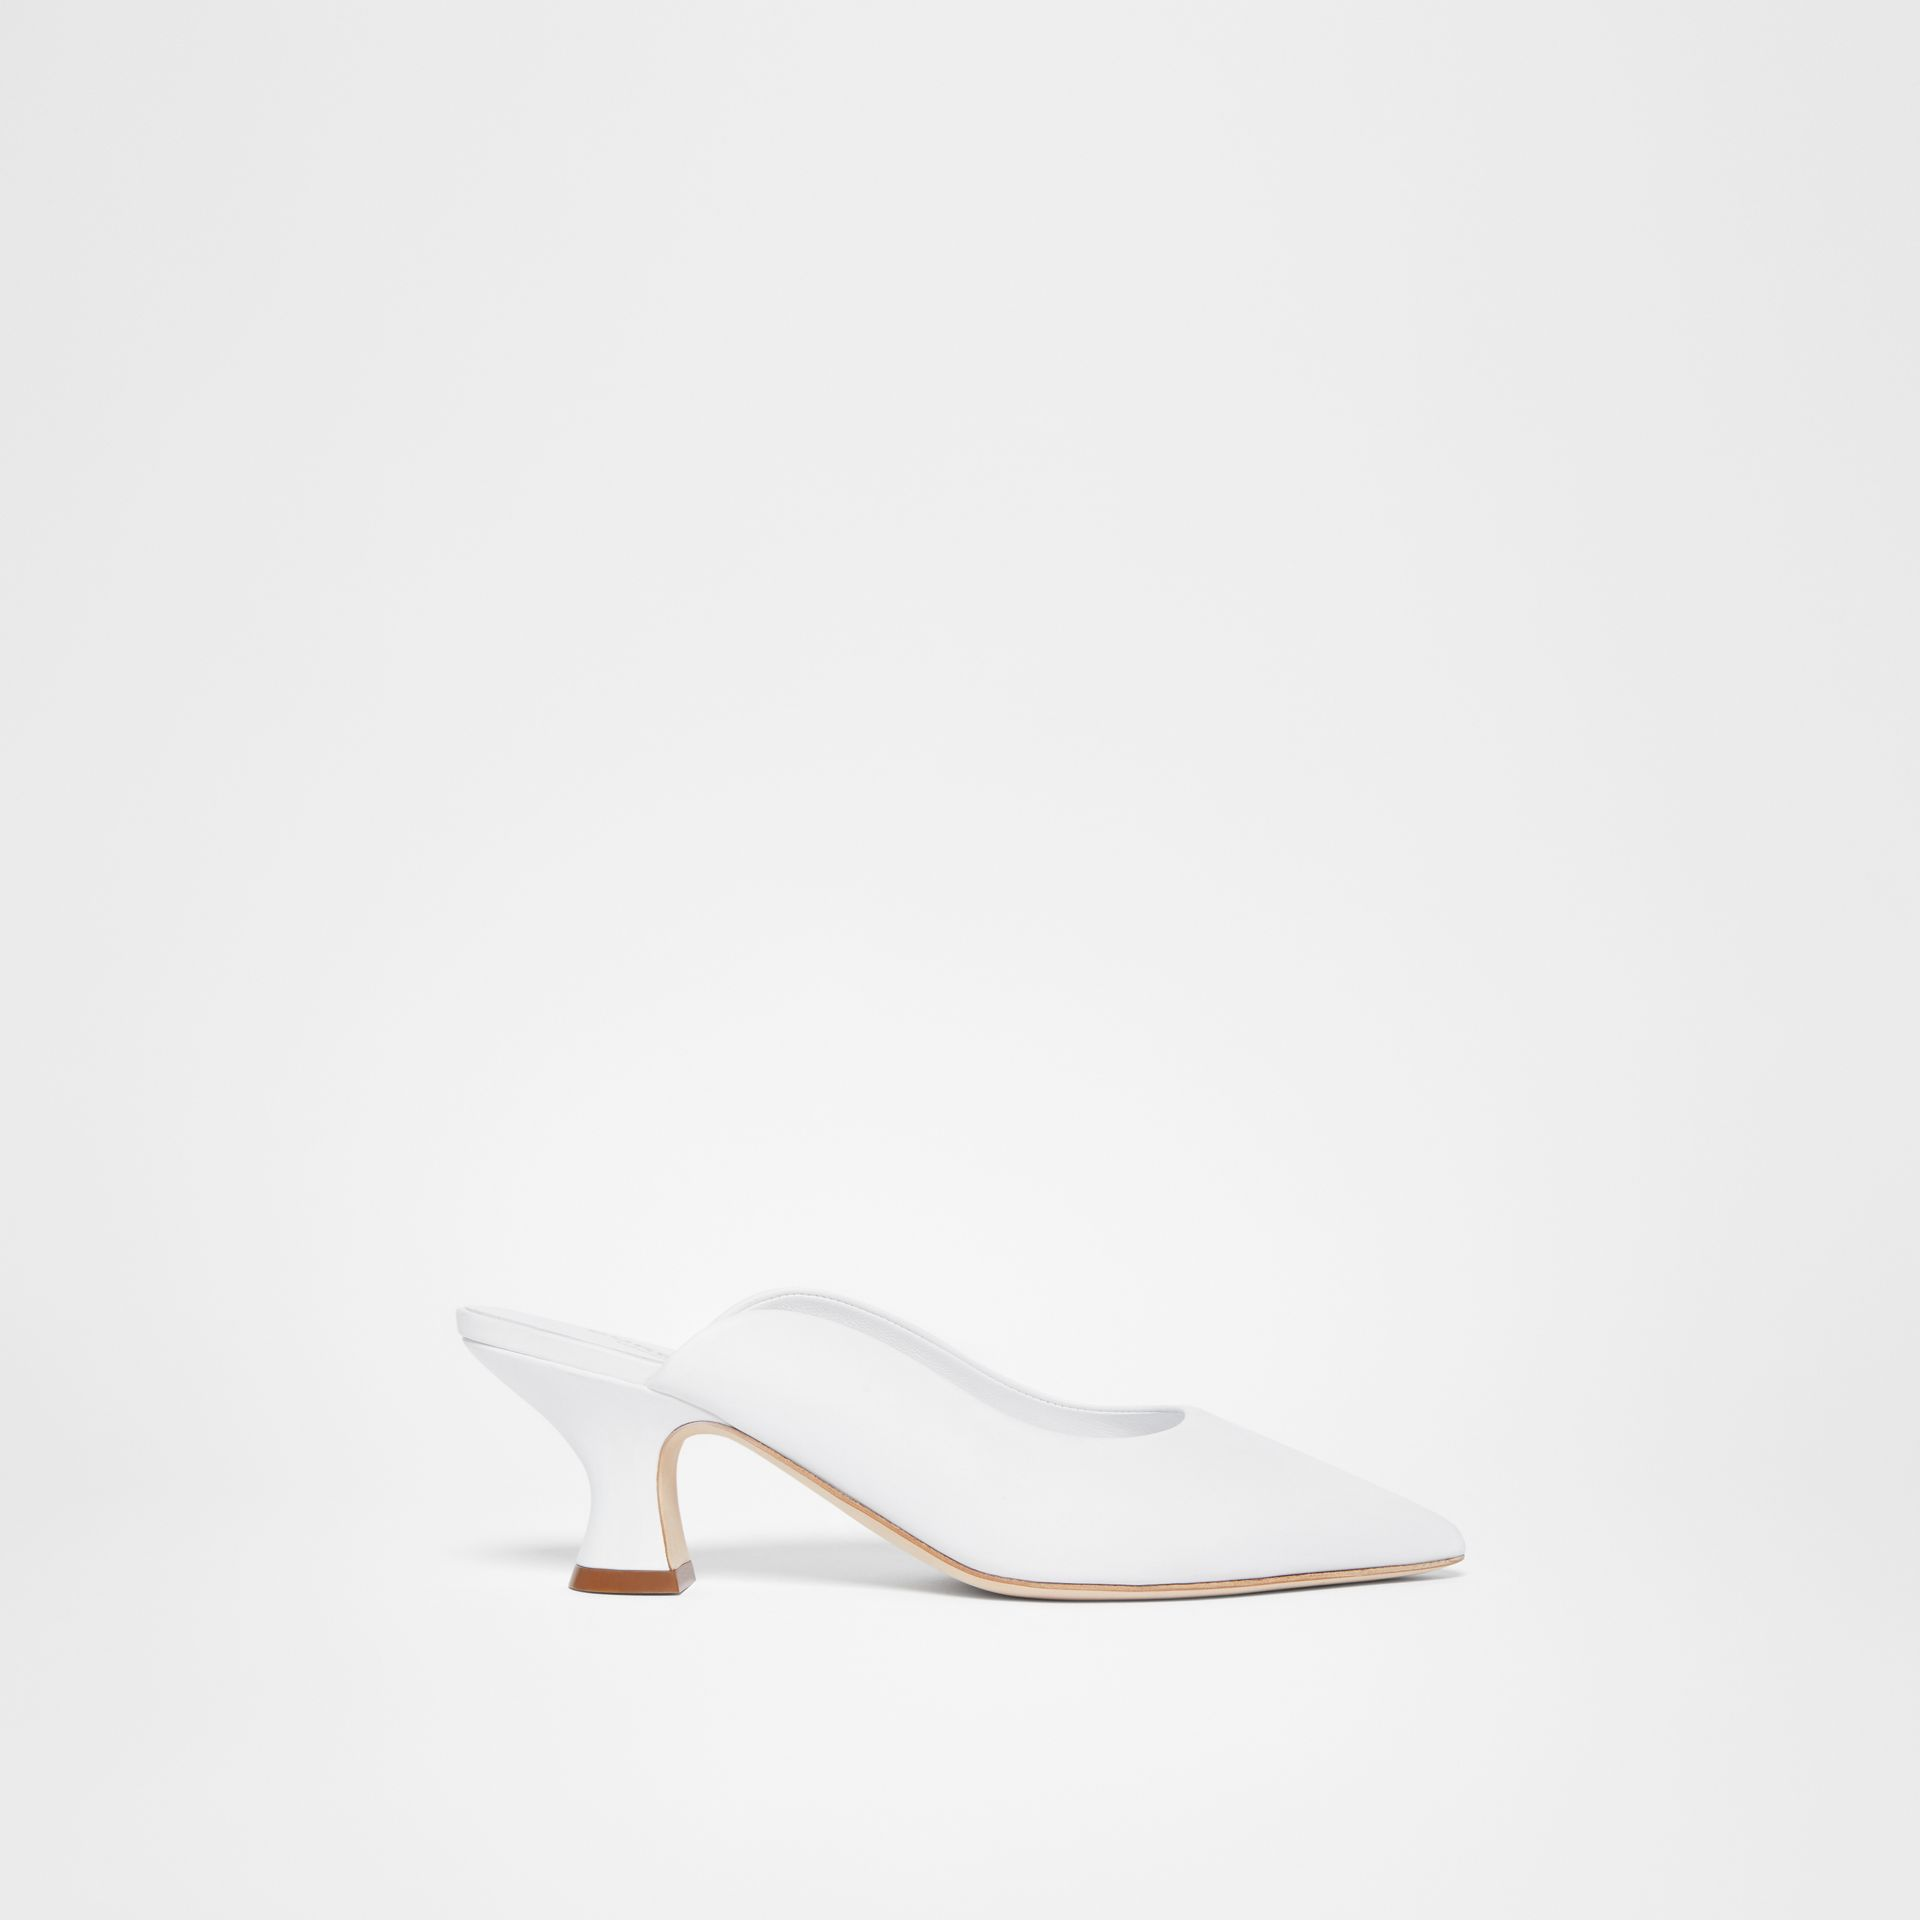 Leather Point-toe Mules in White - Women | Burberry Australia - gallery image 5